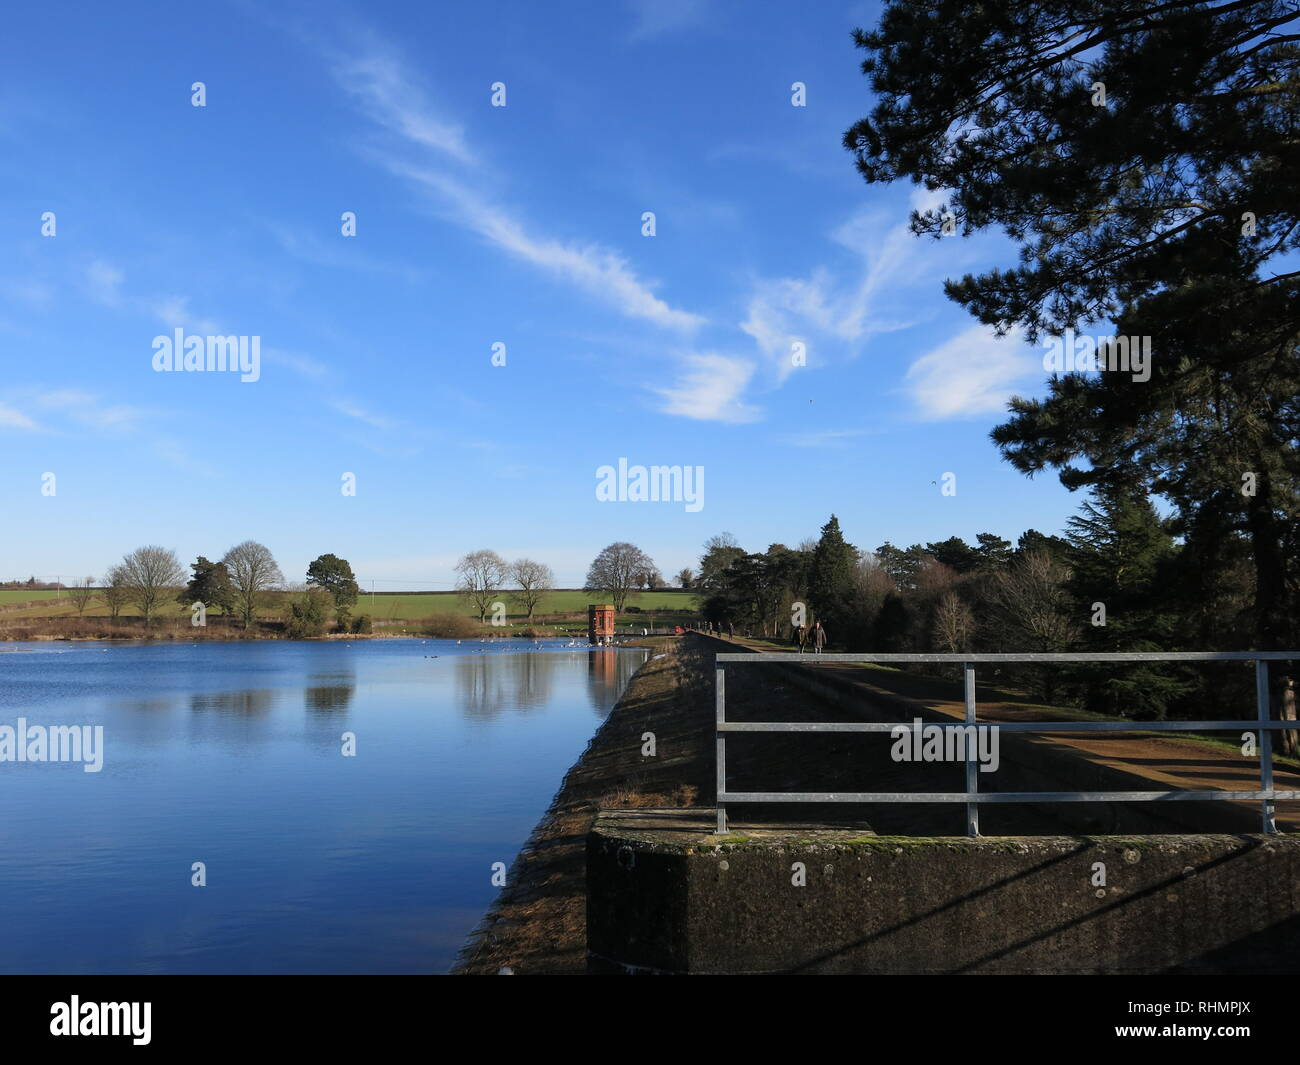 A winter scene of the reservoir on a sunny day at Sywell Country Park, Northamptonshire, February 2019 - Stock Image